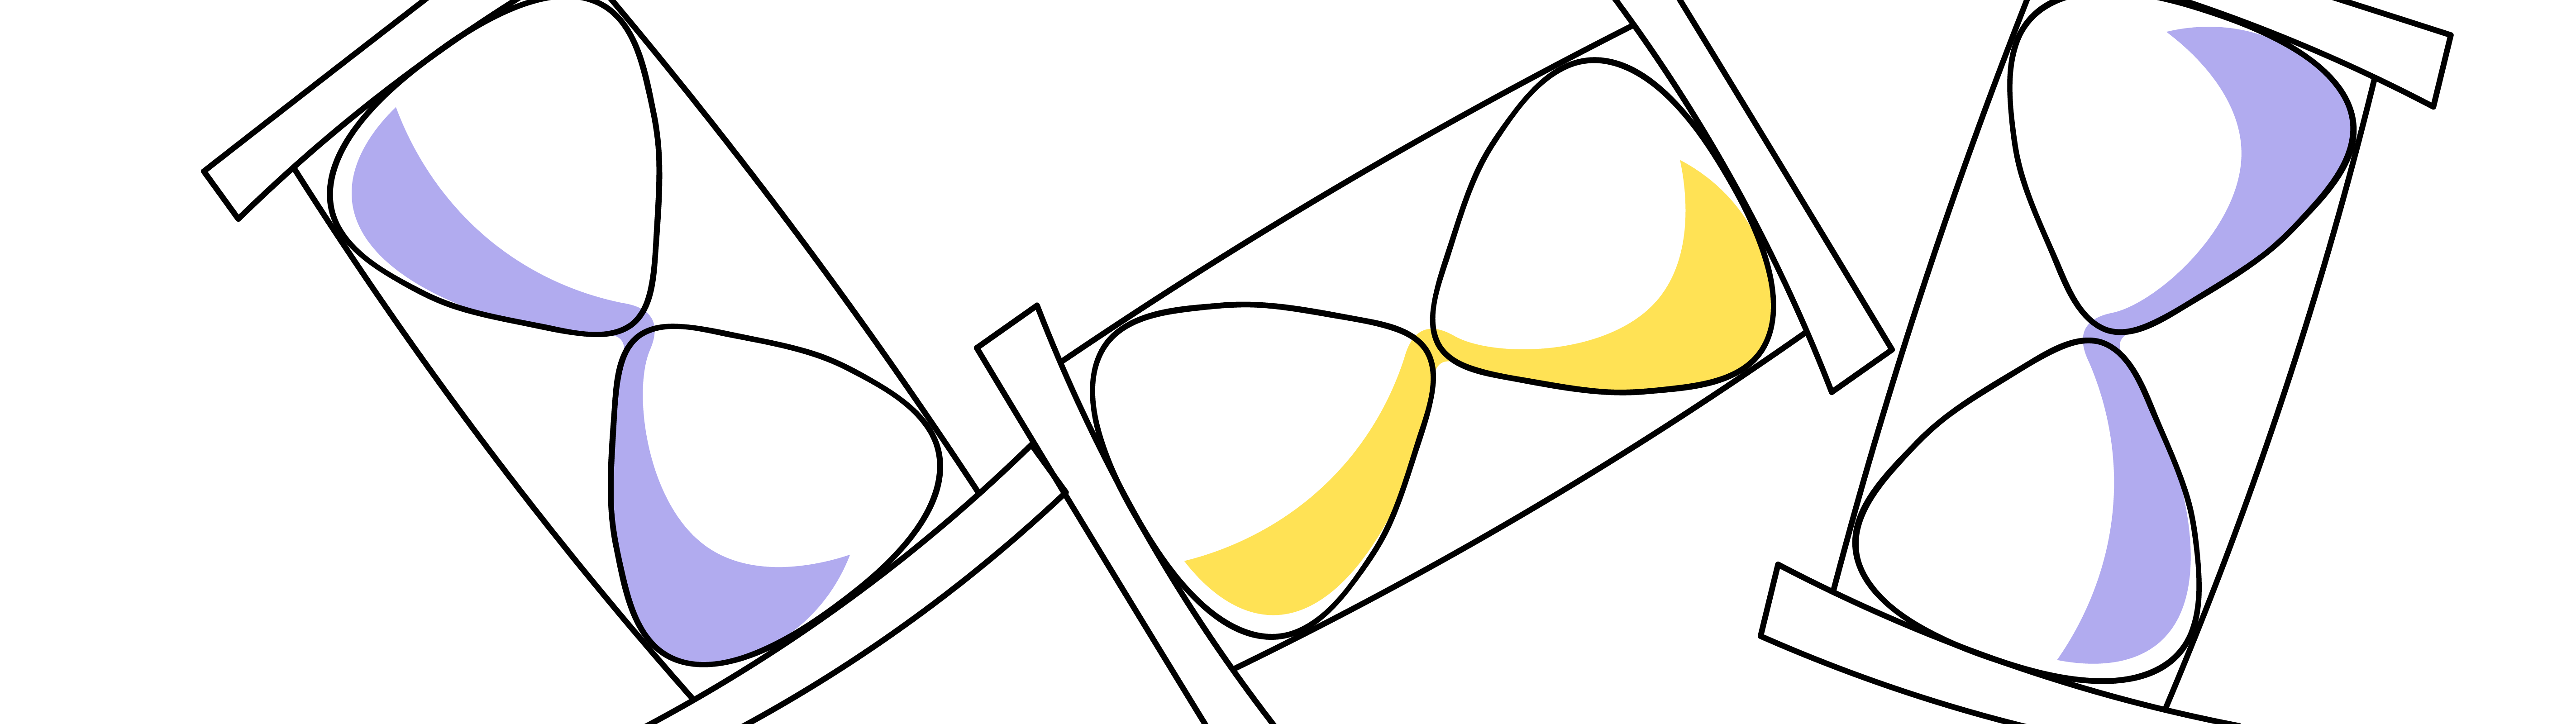 An outline illustration of three hourglasses representing time management.